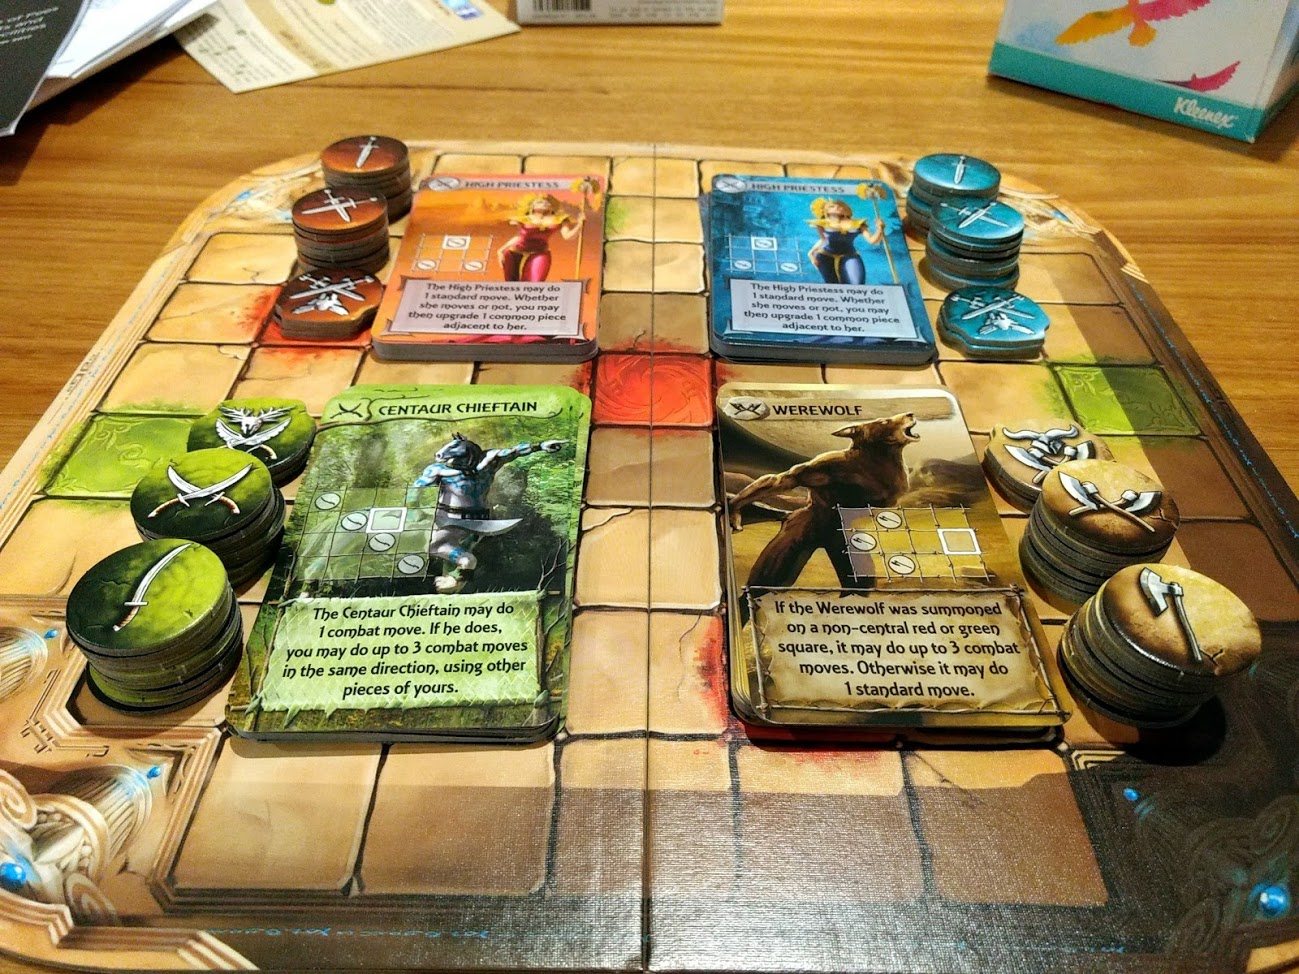 All components you get in Tash-Kalar, it shows the four factions red, blue, green, and brown.